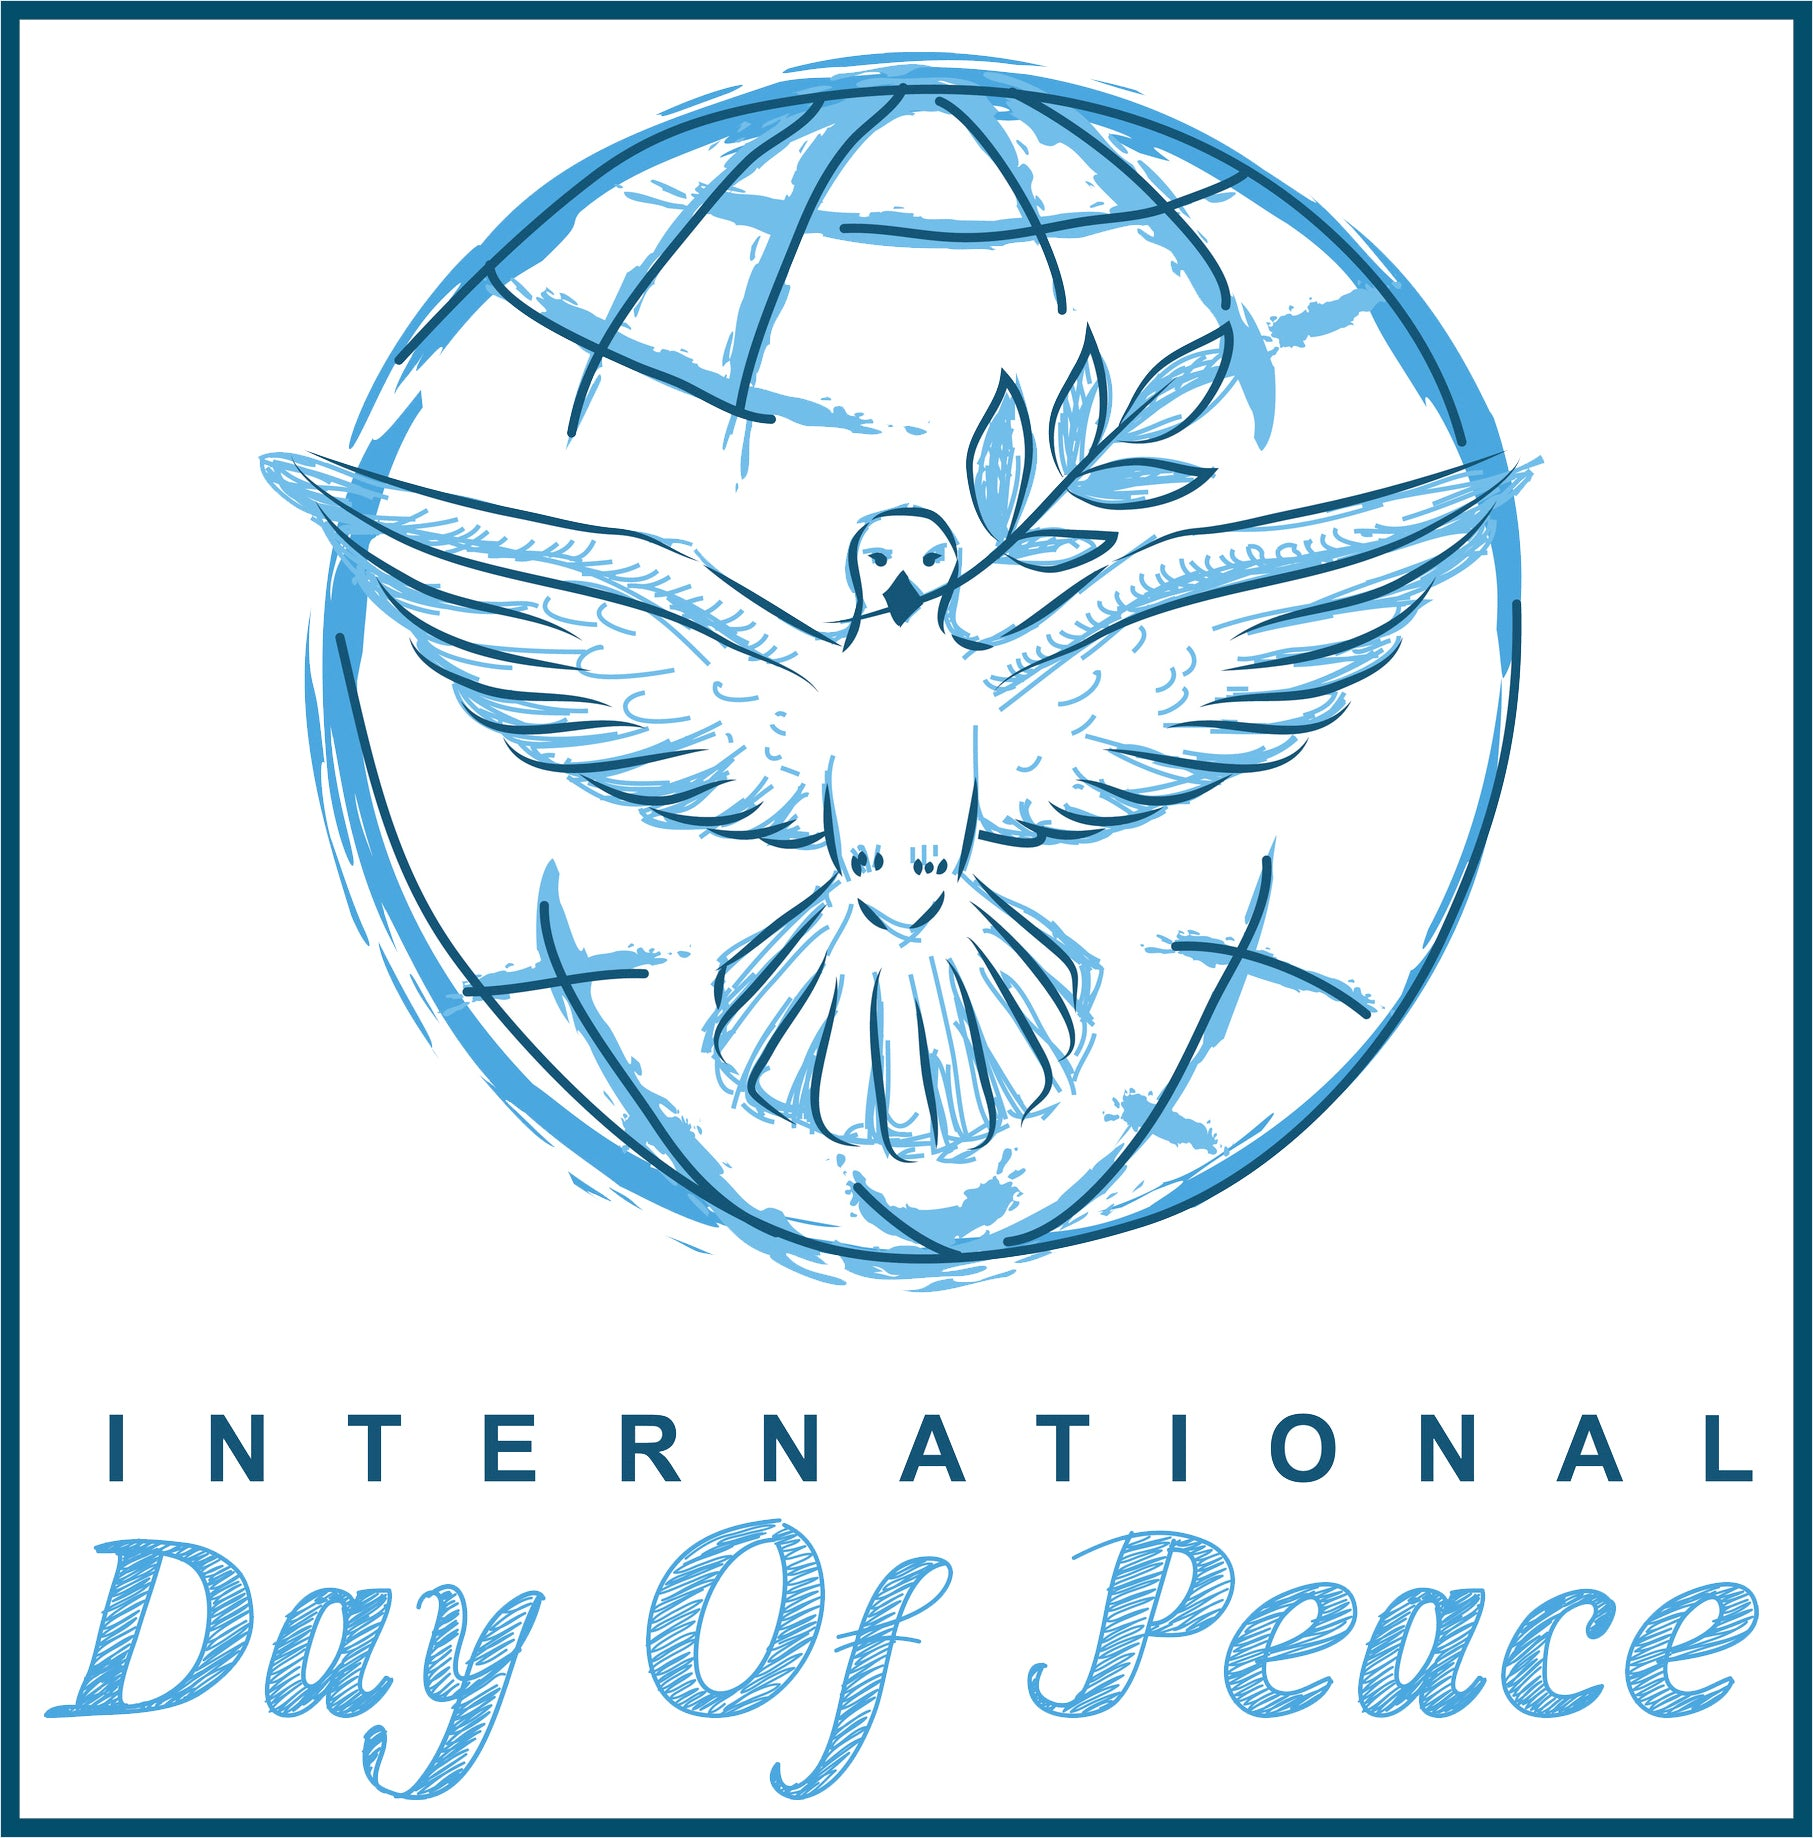 International Day of Peace Cartoon Sketch Icon Border Around Image As Shown Vinyl Sticker